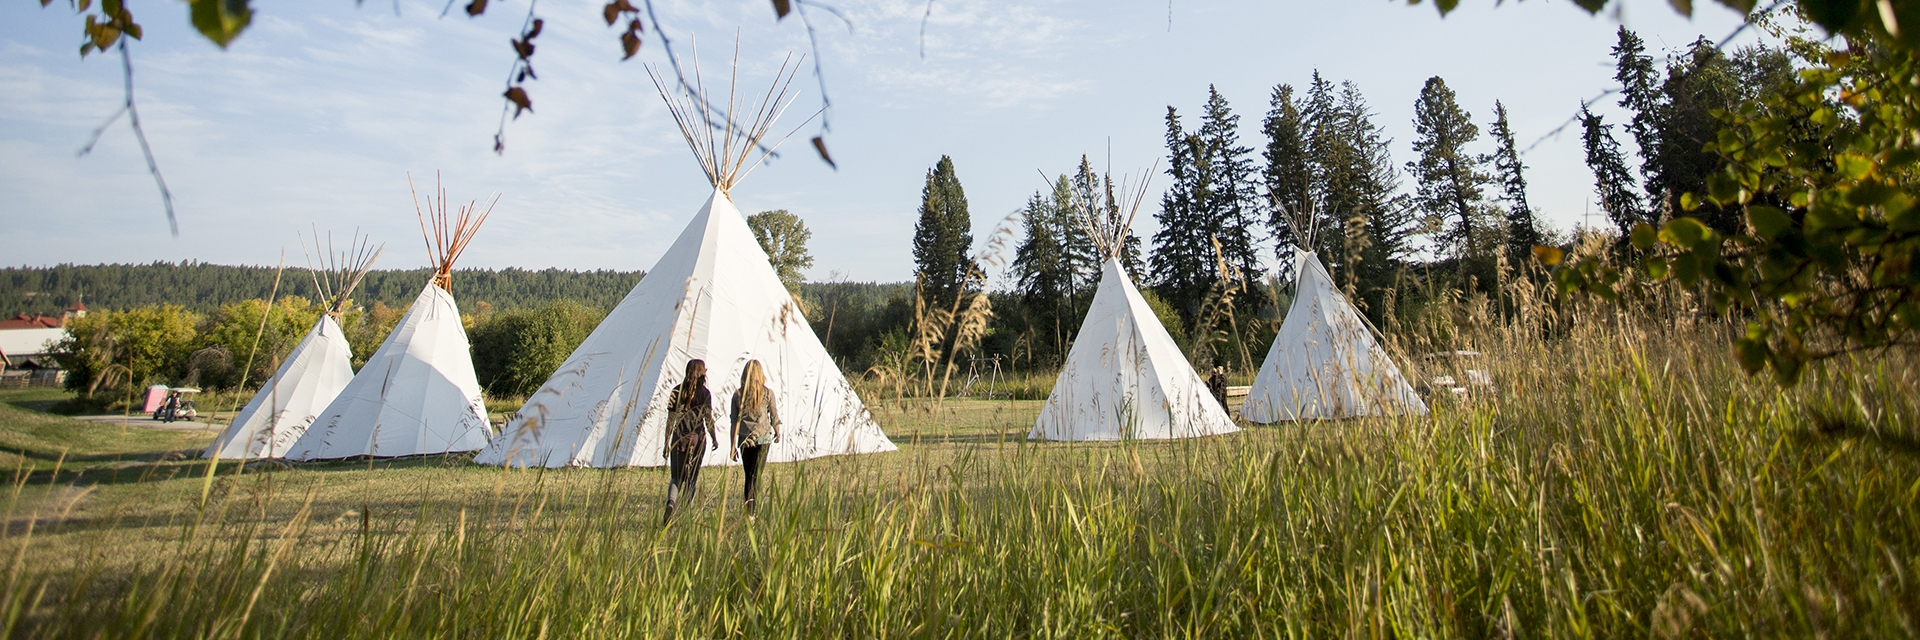 A collection of white teepees in a grassy field